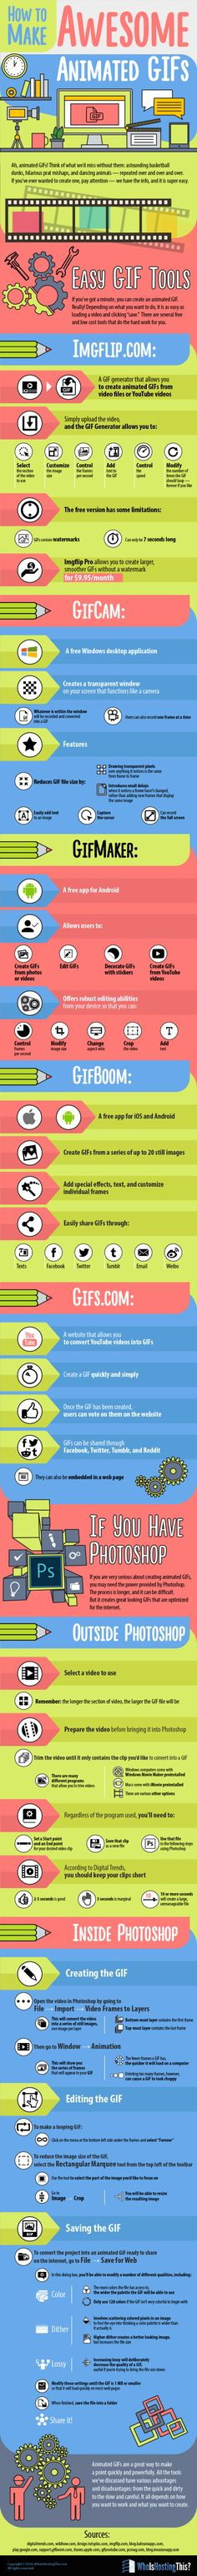 How to Make Animated GIFs That Will Improve Your Social Media Strategy [Infographic] - @redwebdesign